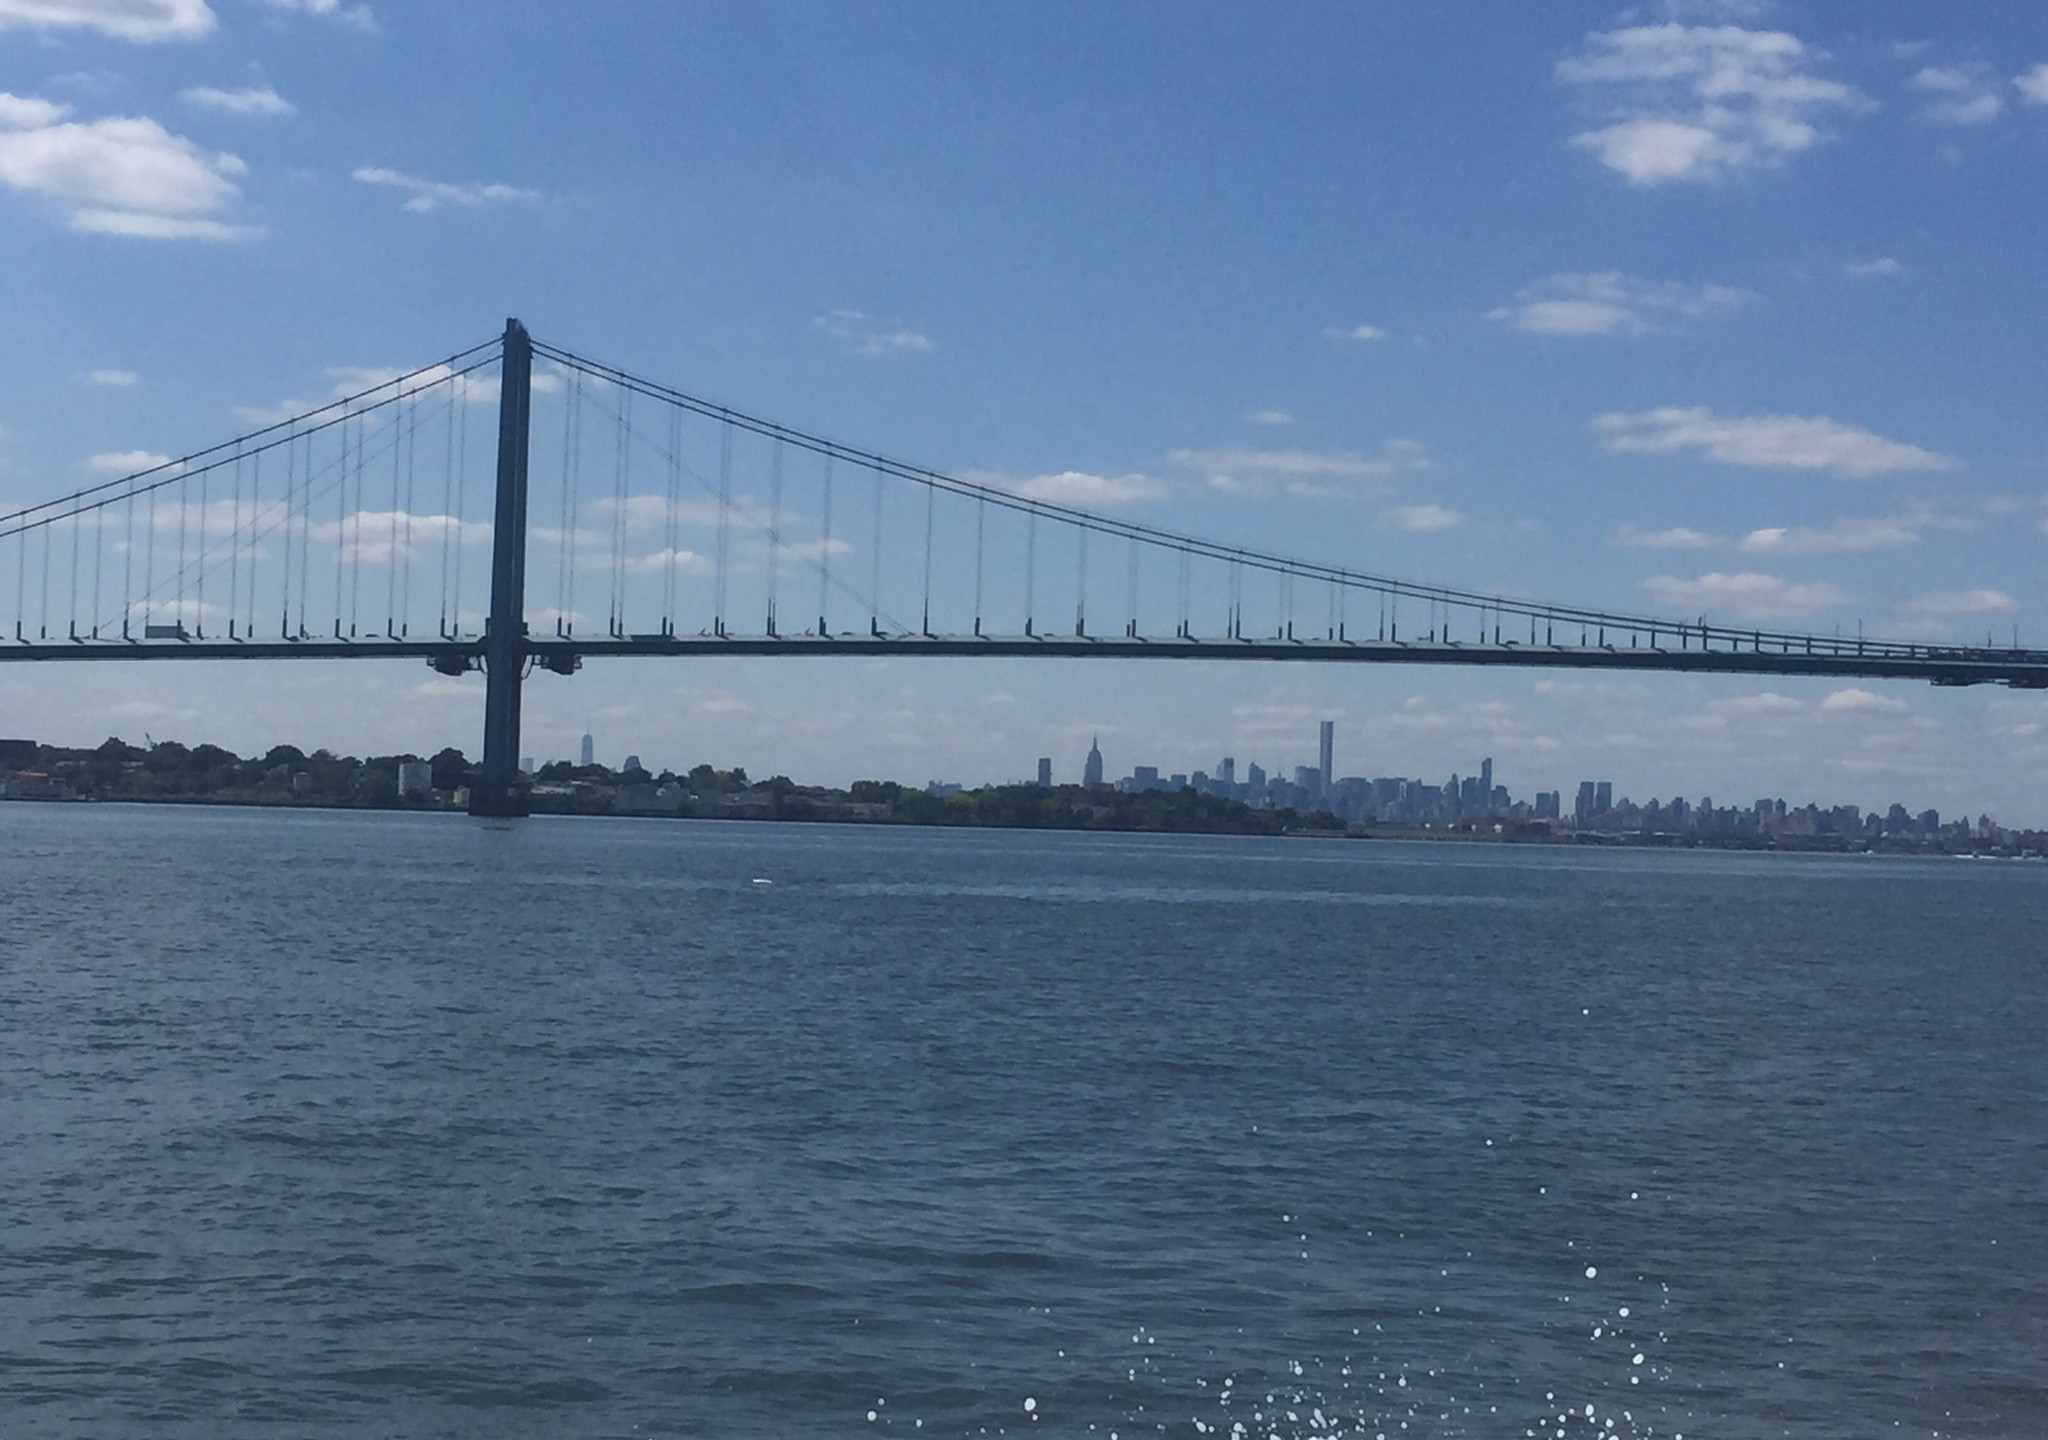 Approaching the Throgs Neck Bridge you can see the city line.